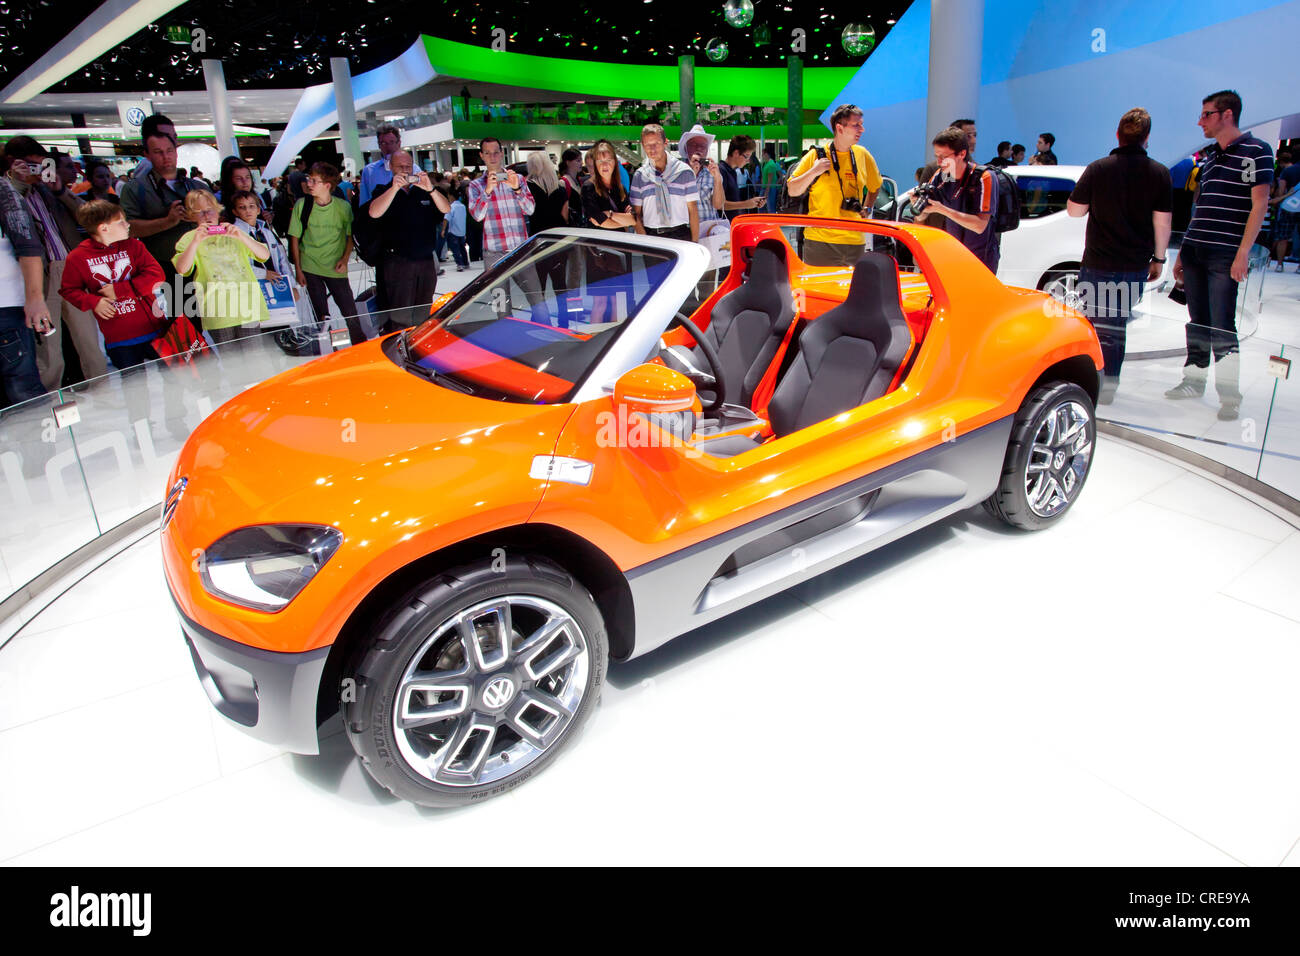 Volkswagen, VW up Buggy, 64th International Motor Show, IAA, 2011, Frankfurt am Main, Hesse, Germany, Europe - Stock Image